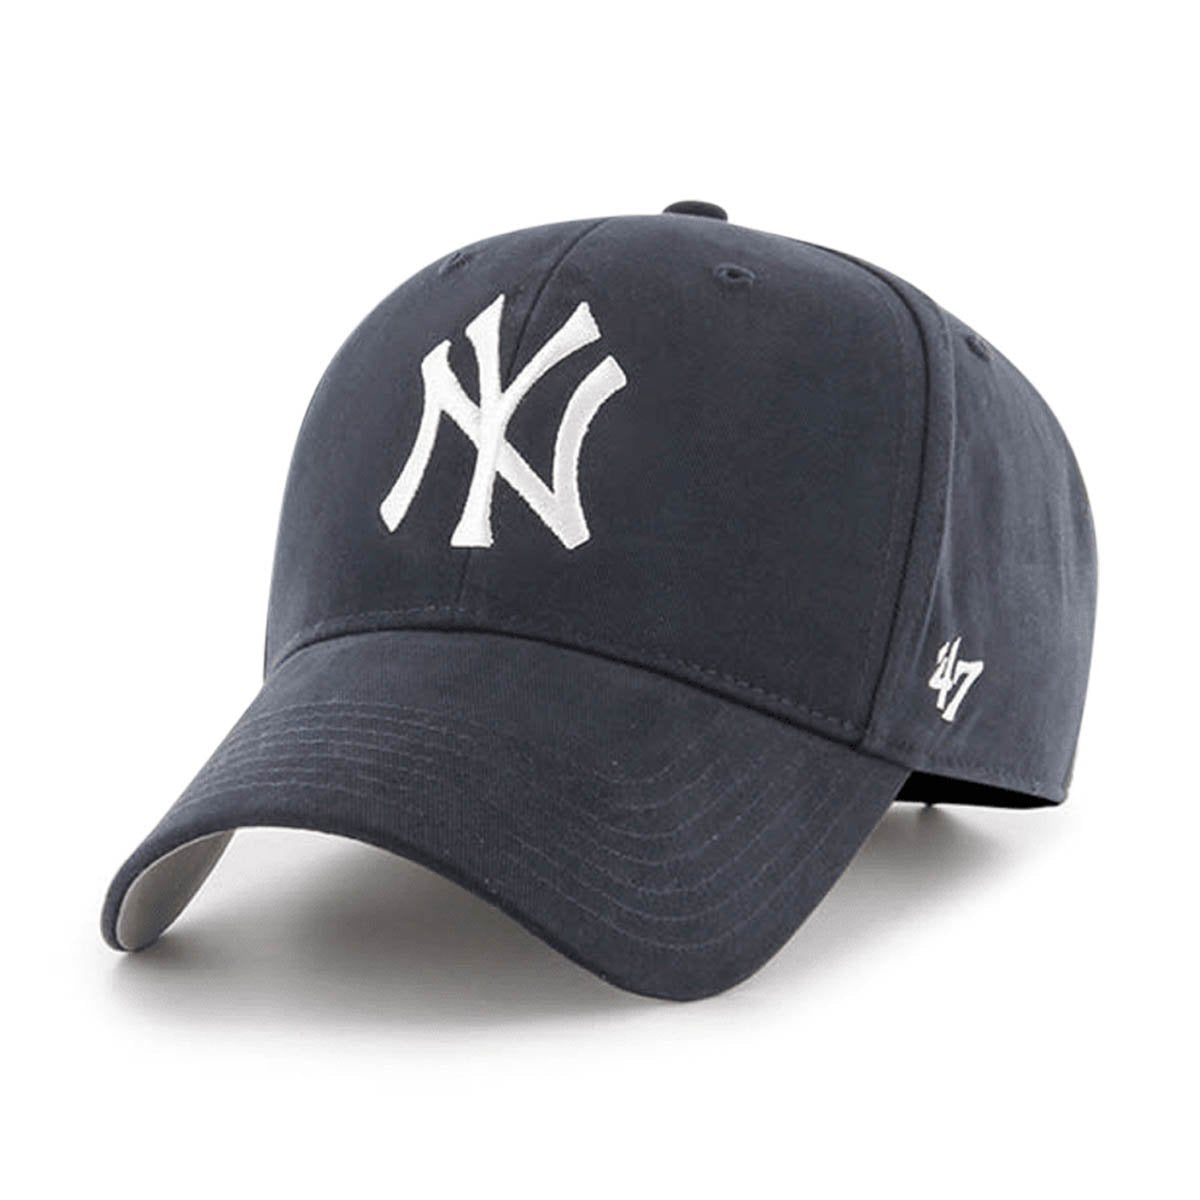 New York Yankees Home Basic 47 MVP - Toddler